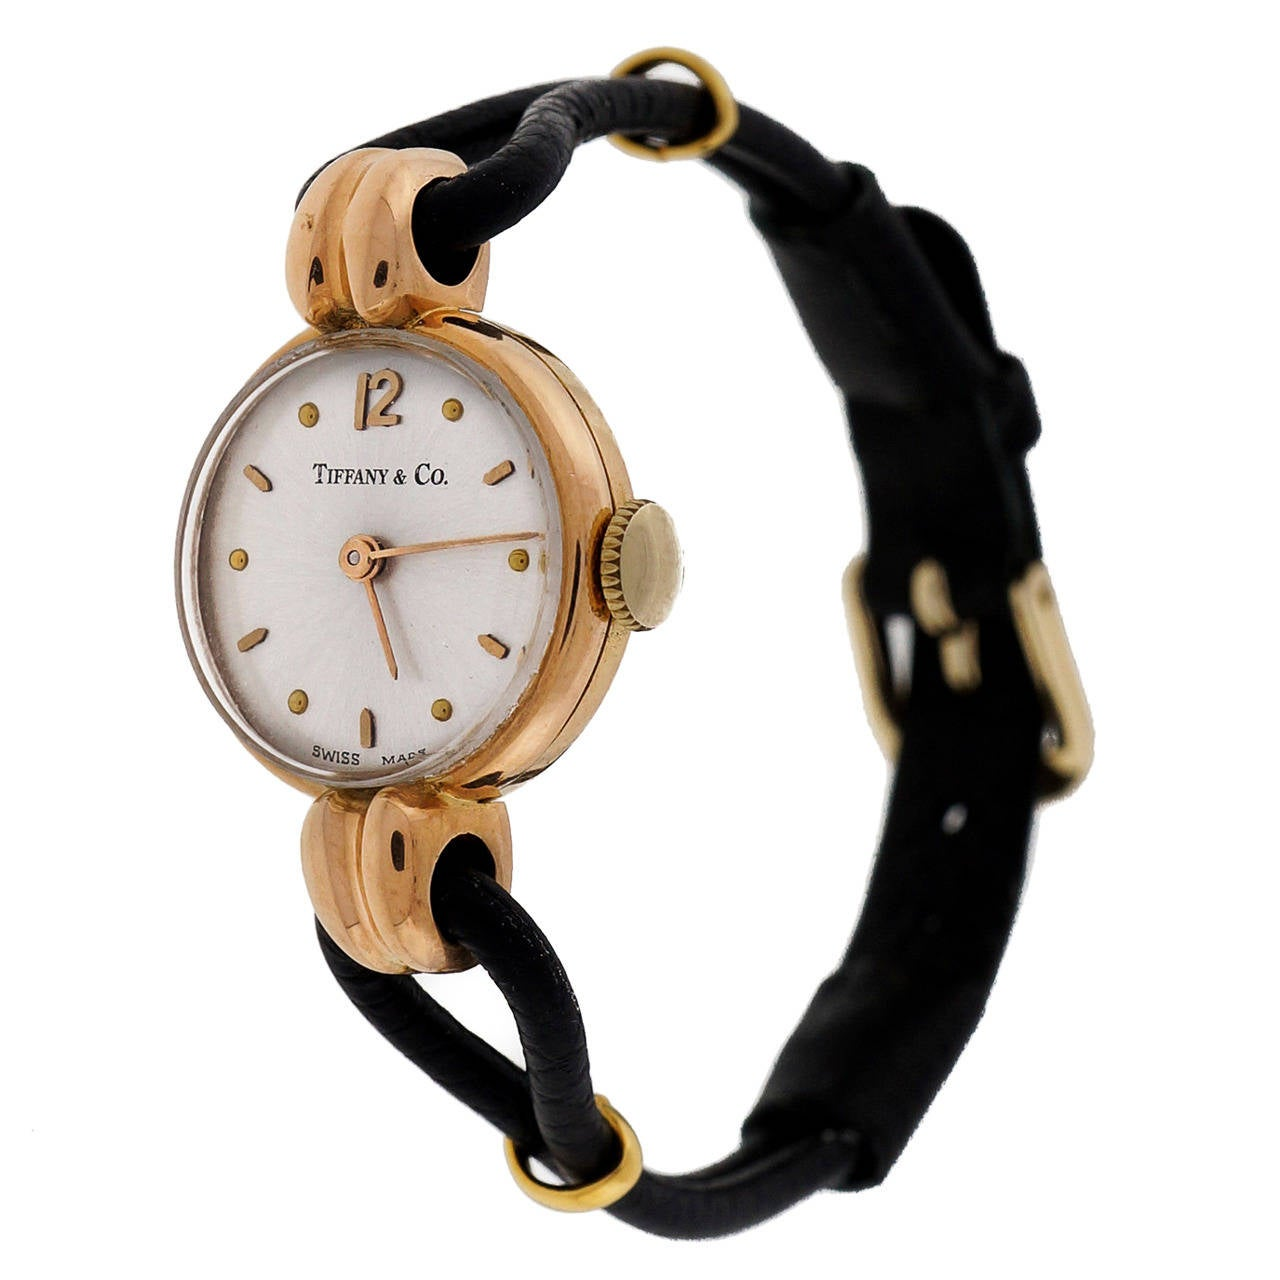 Universal Lady's Rose Gold Wristwatch Retailed by Tiffany & Co circa 1940s